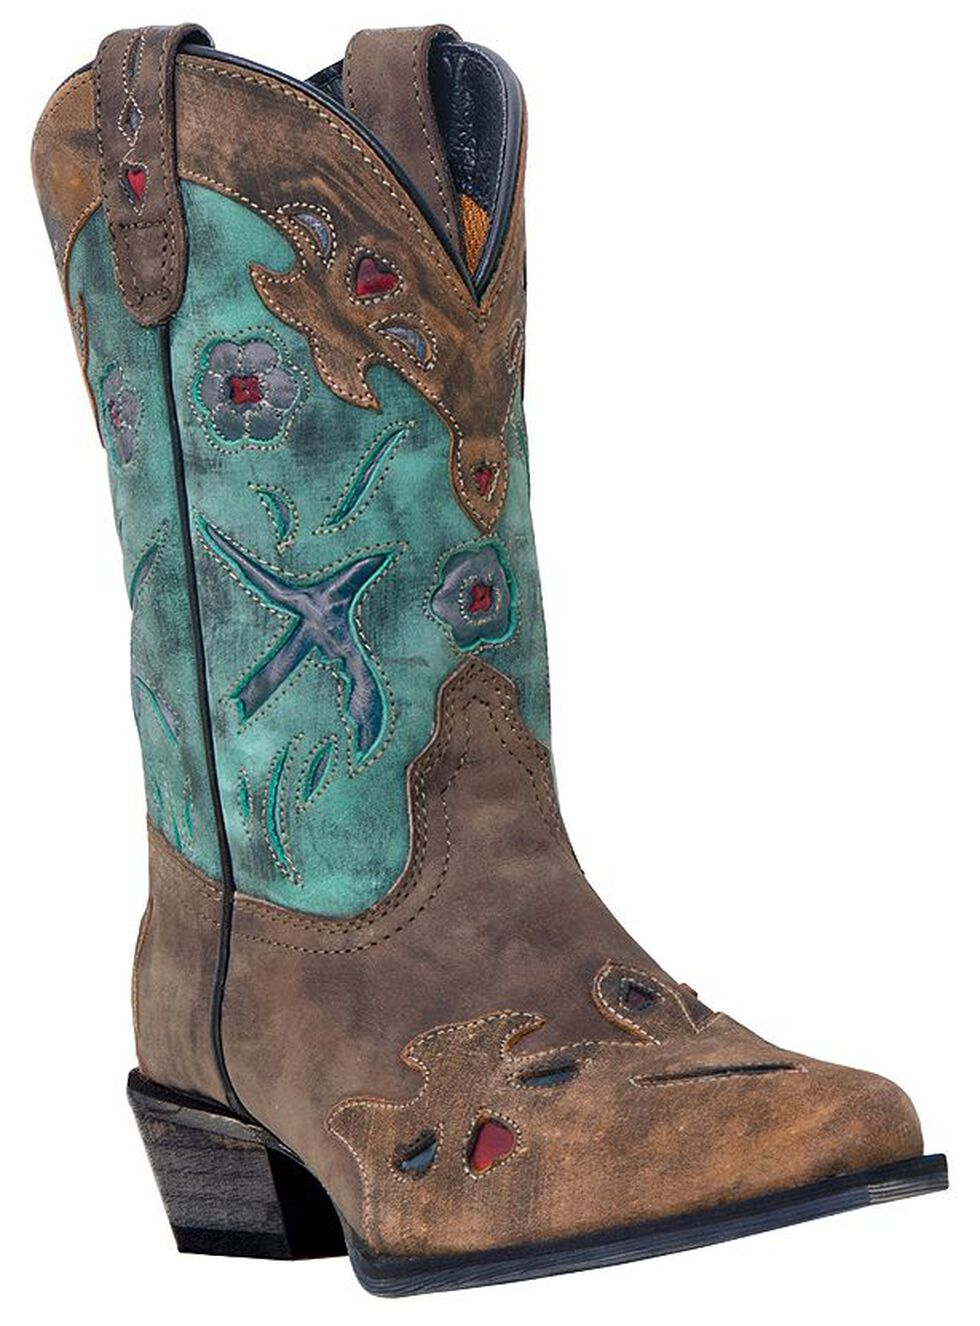 Dan Post Youth Girls' Blue Bird Cowgirl Boots - Snip Toe, Brown, hi-res